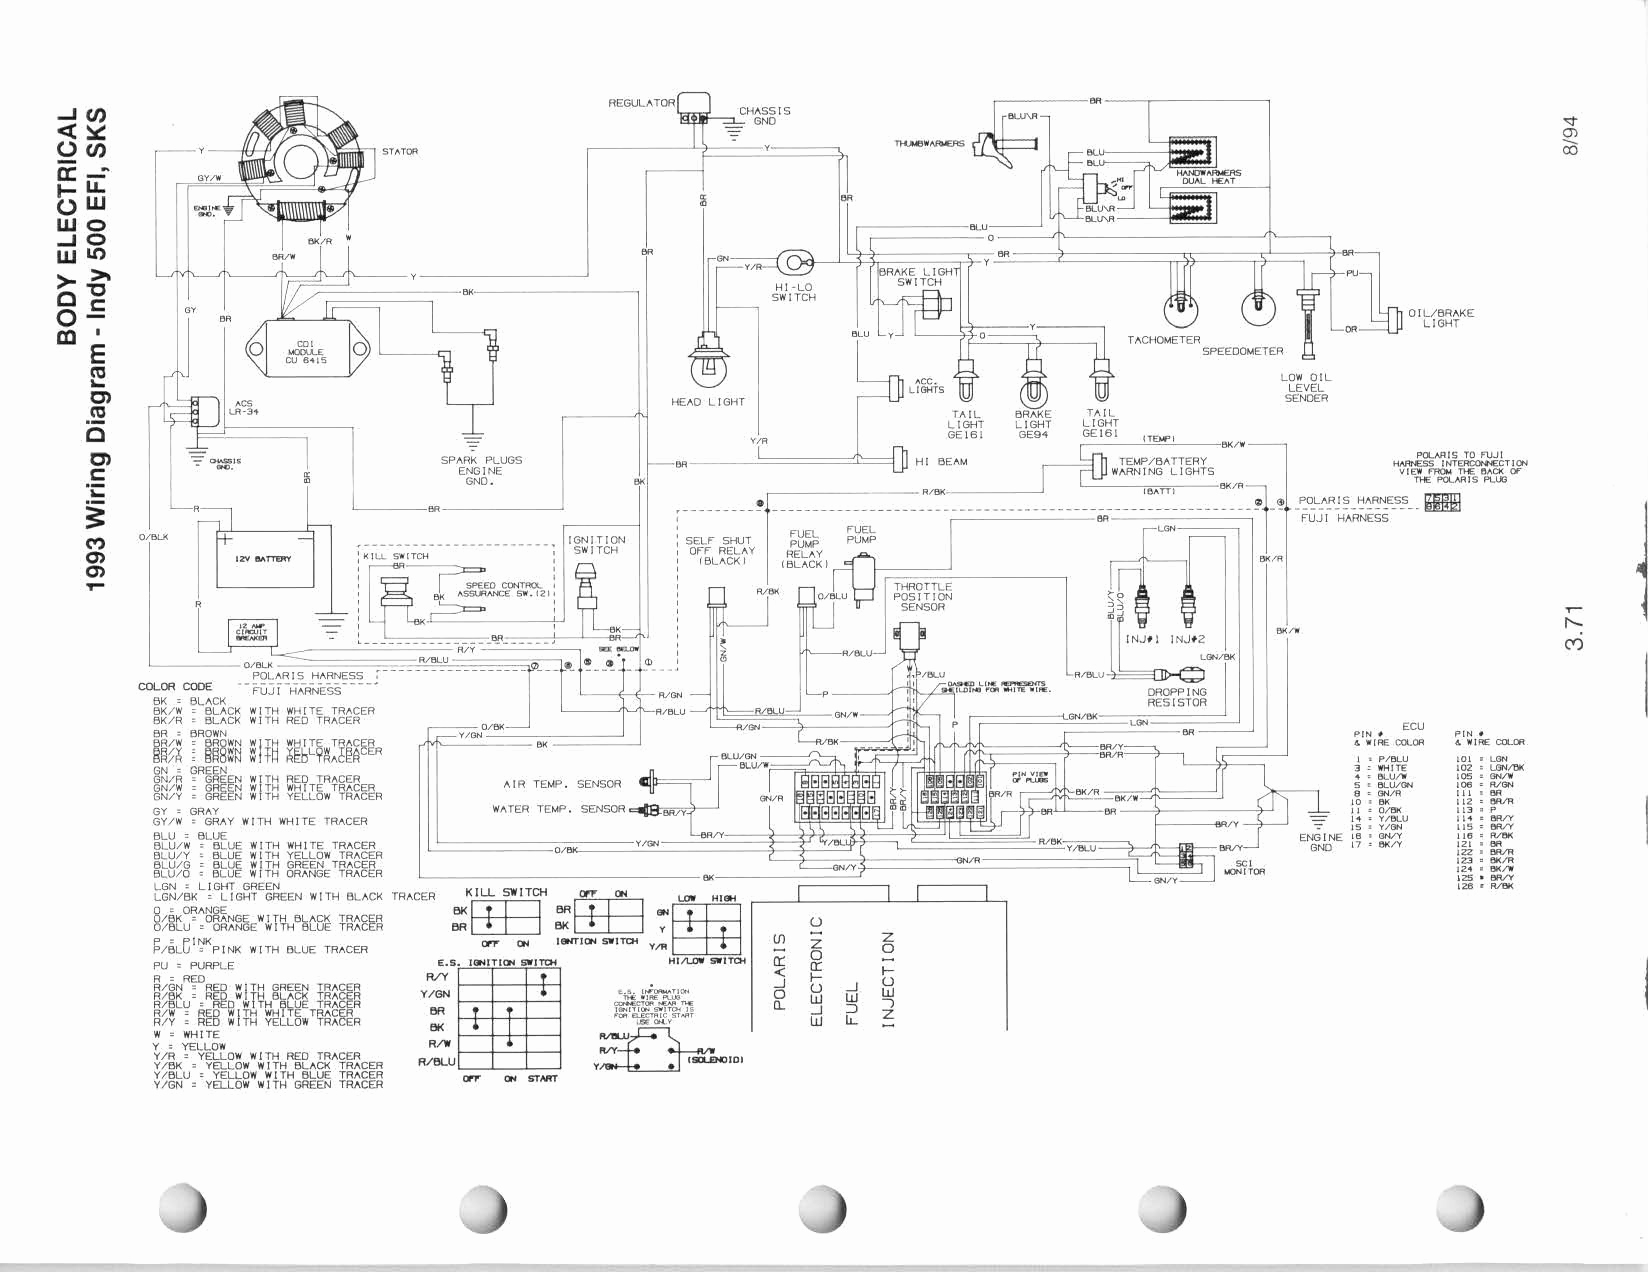 polaris ranger wiring diagram | free wiring diagram wiring diagram for 2007 polaris xp 700 ranger